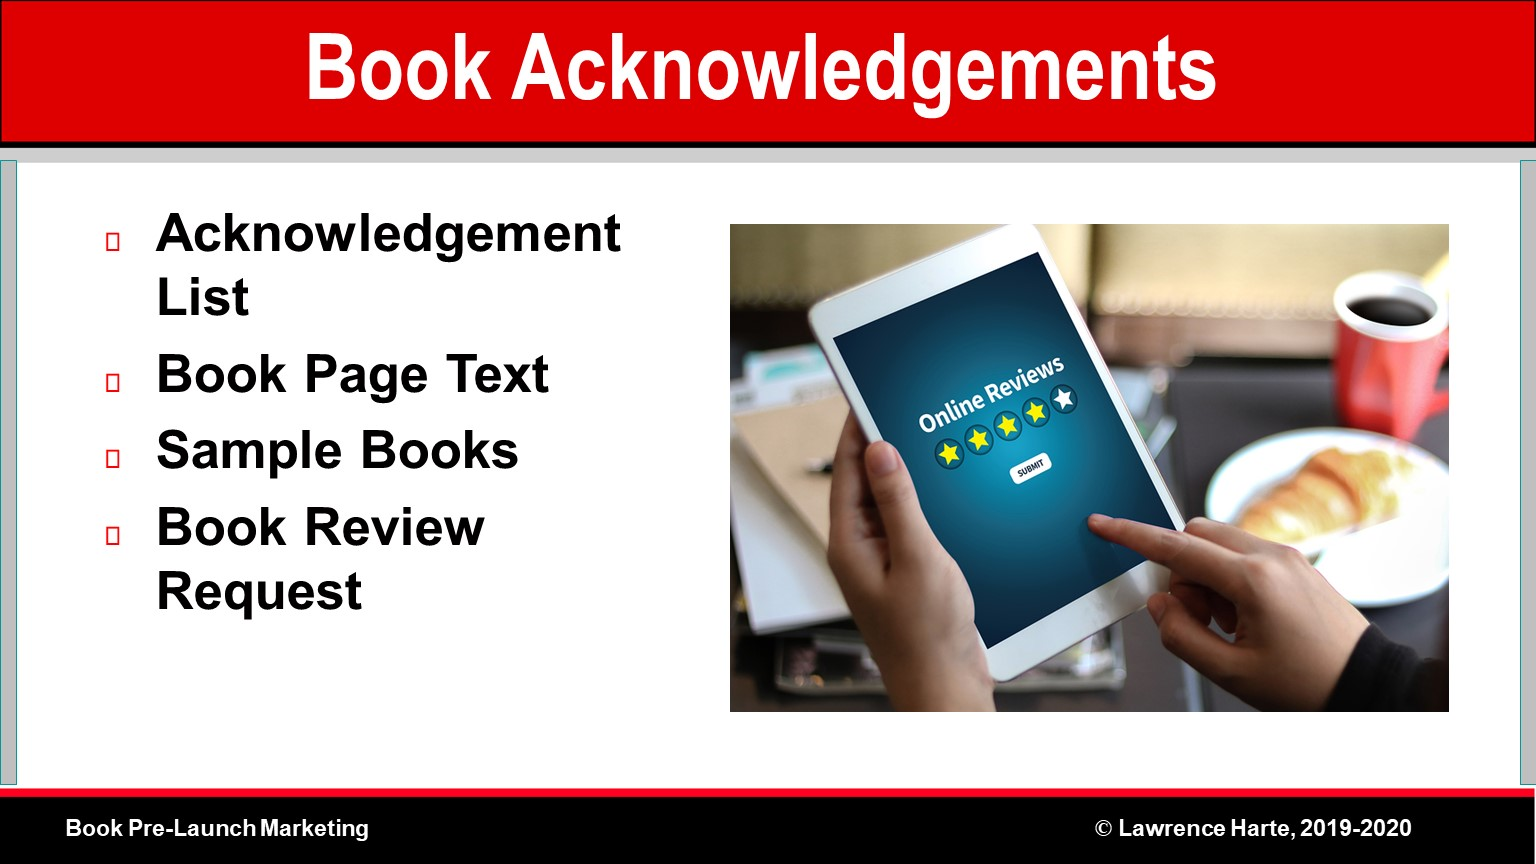 Book Acknowledgements for Author Credibility, Reviews, and Promotion